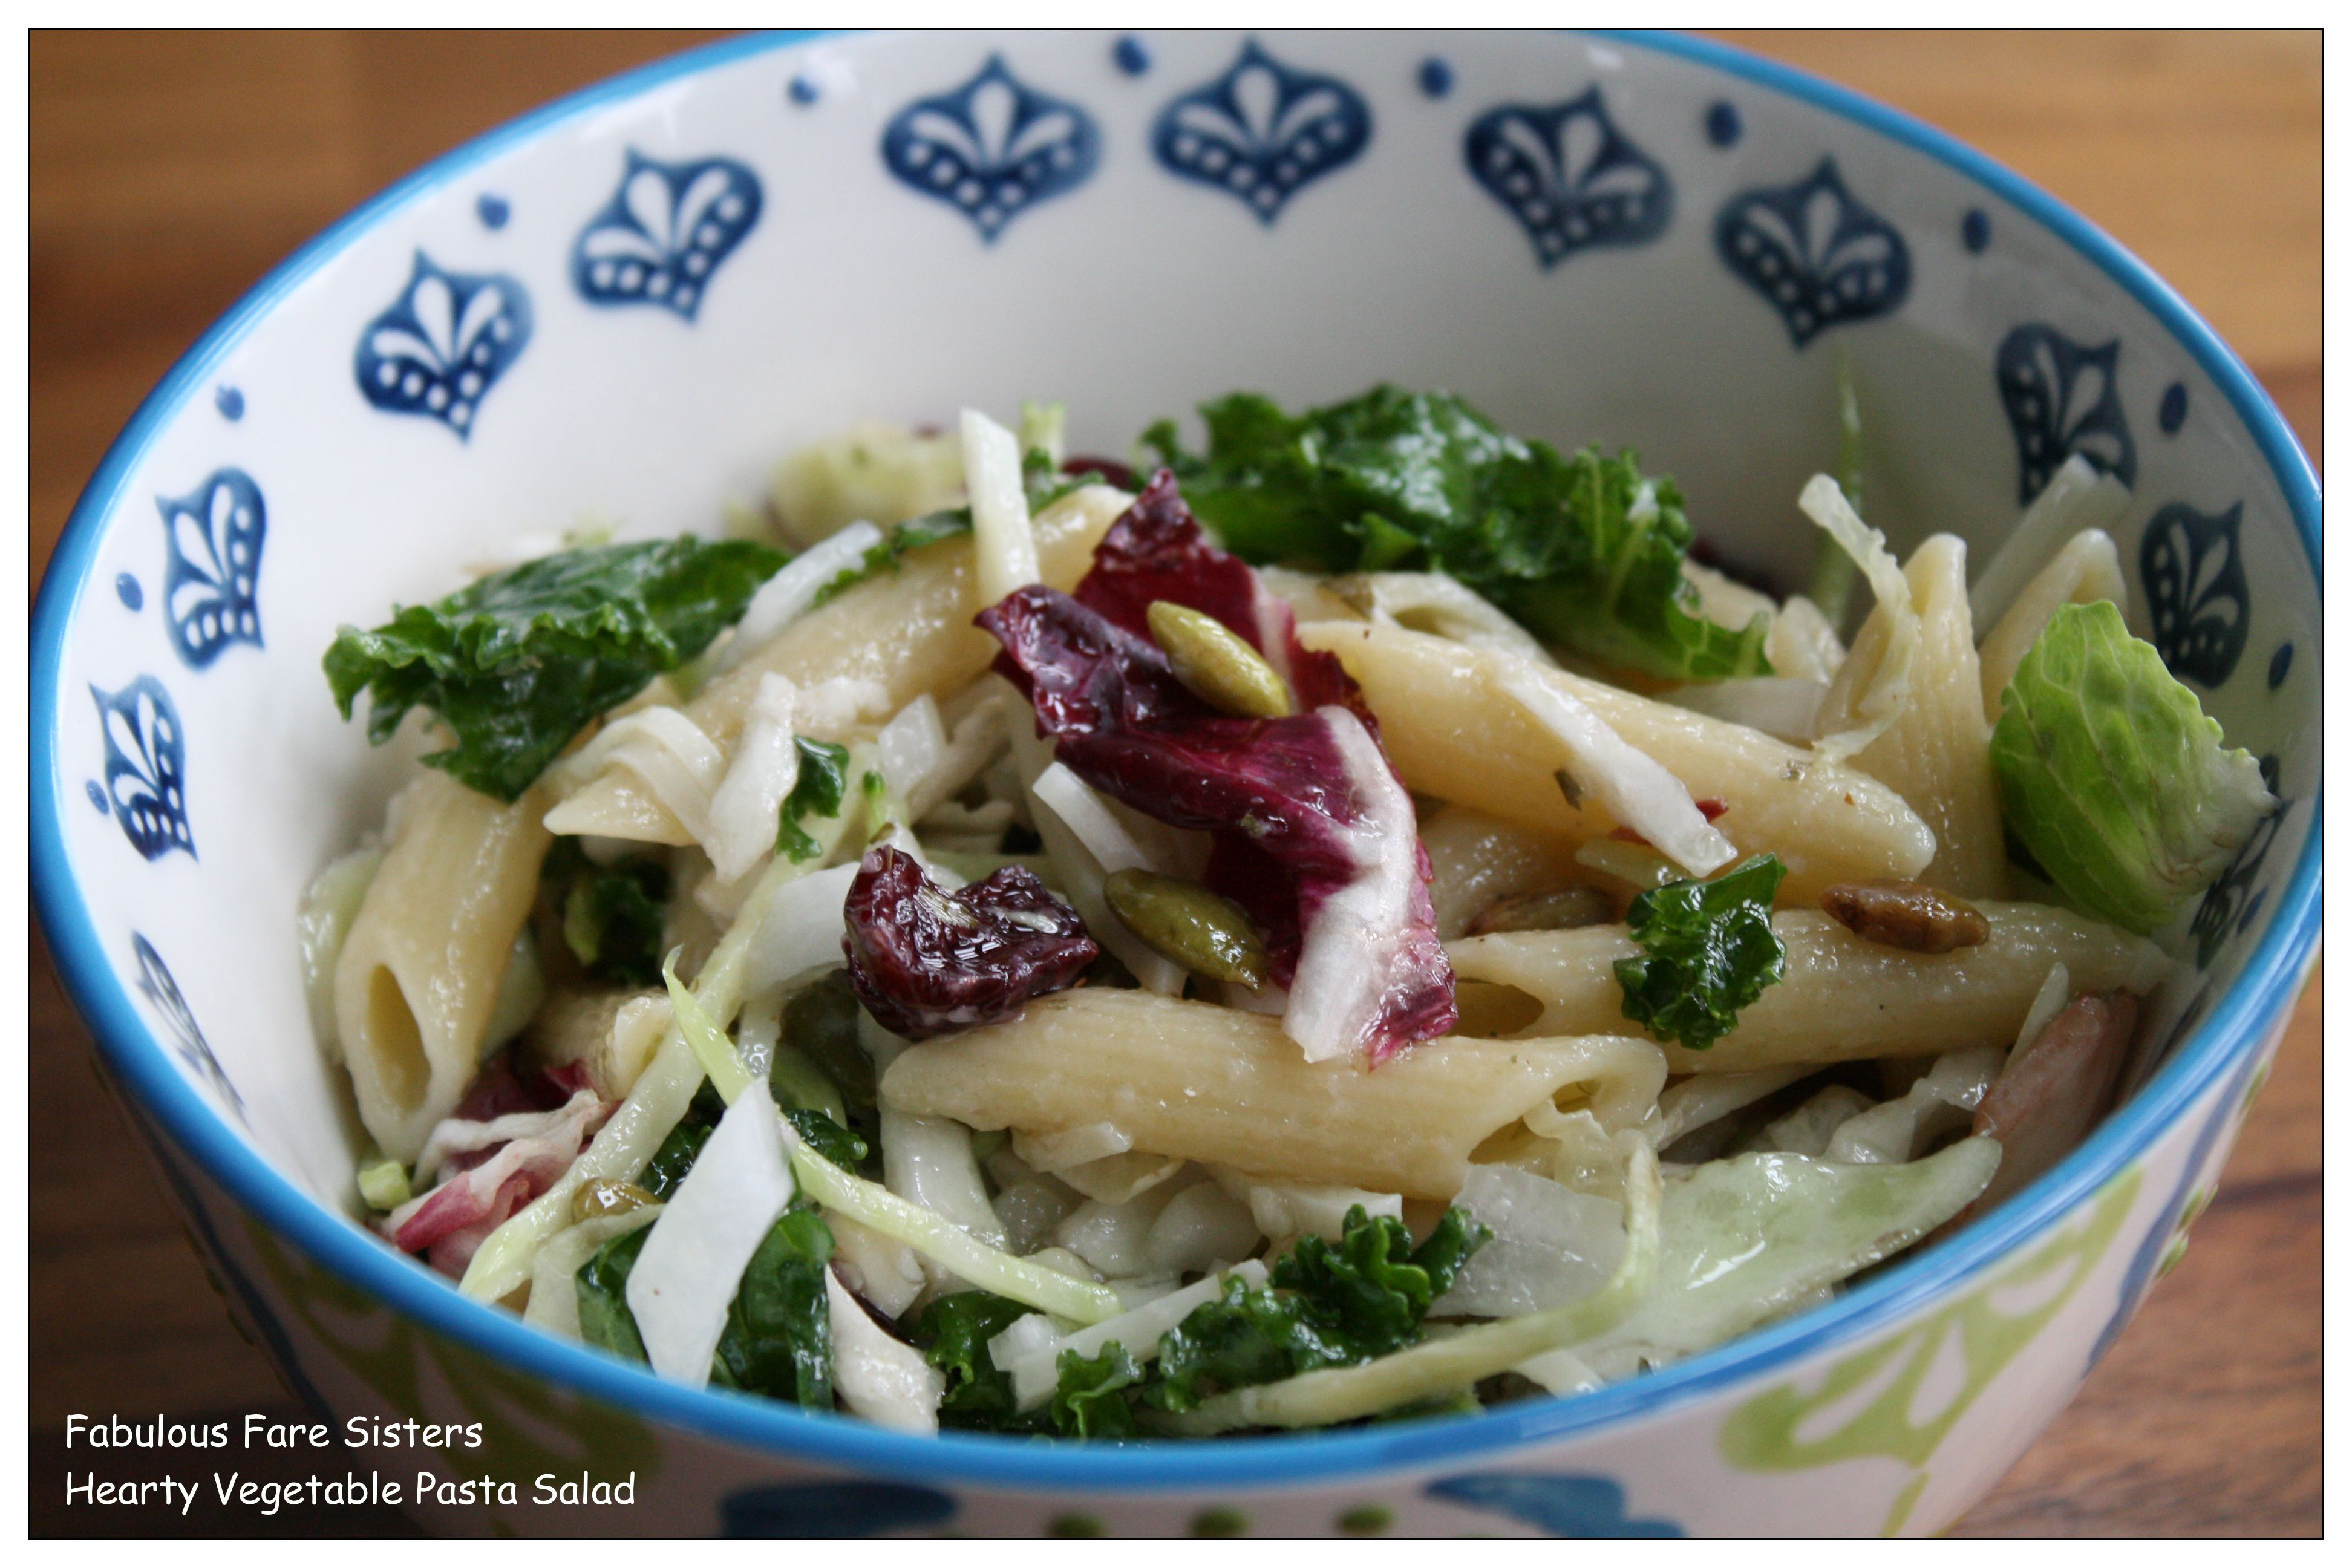 Hearty Vegetable Pasta Salad